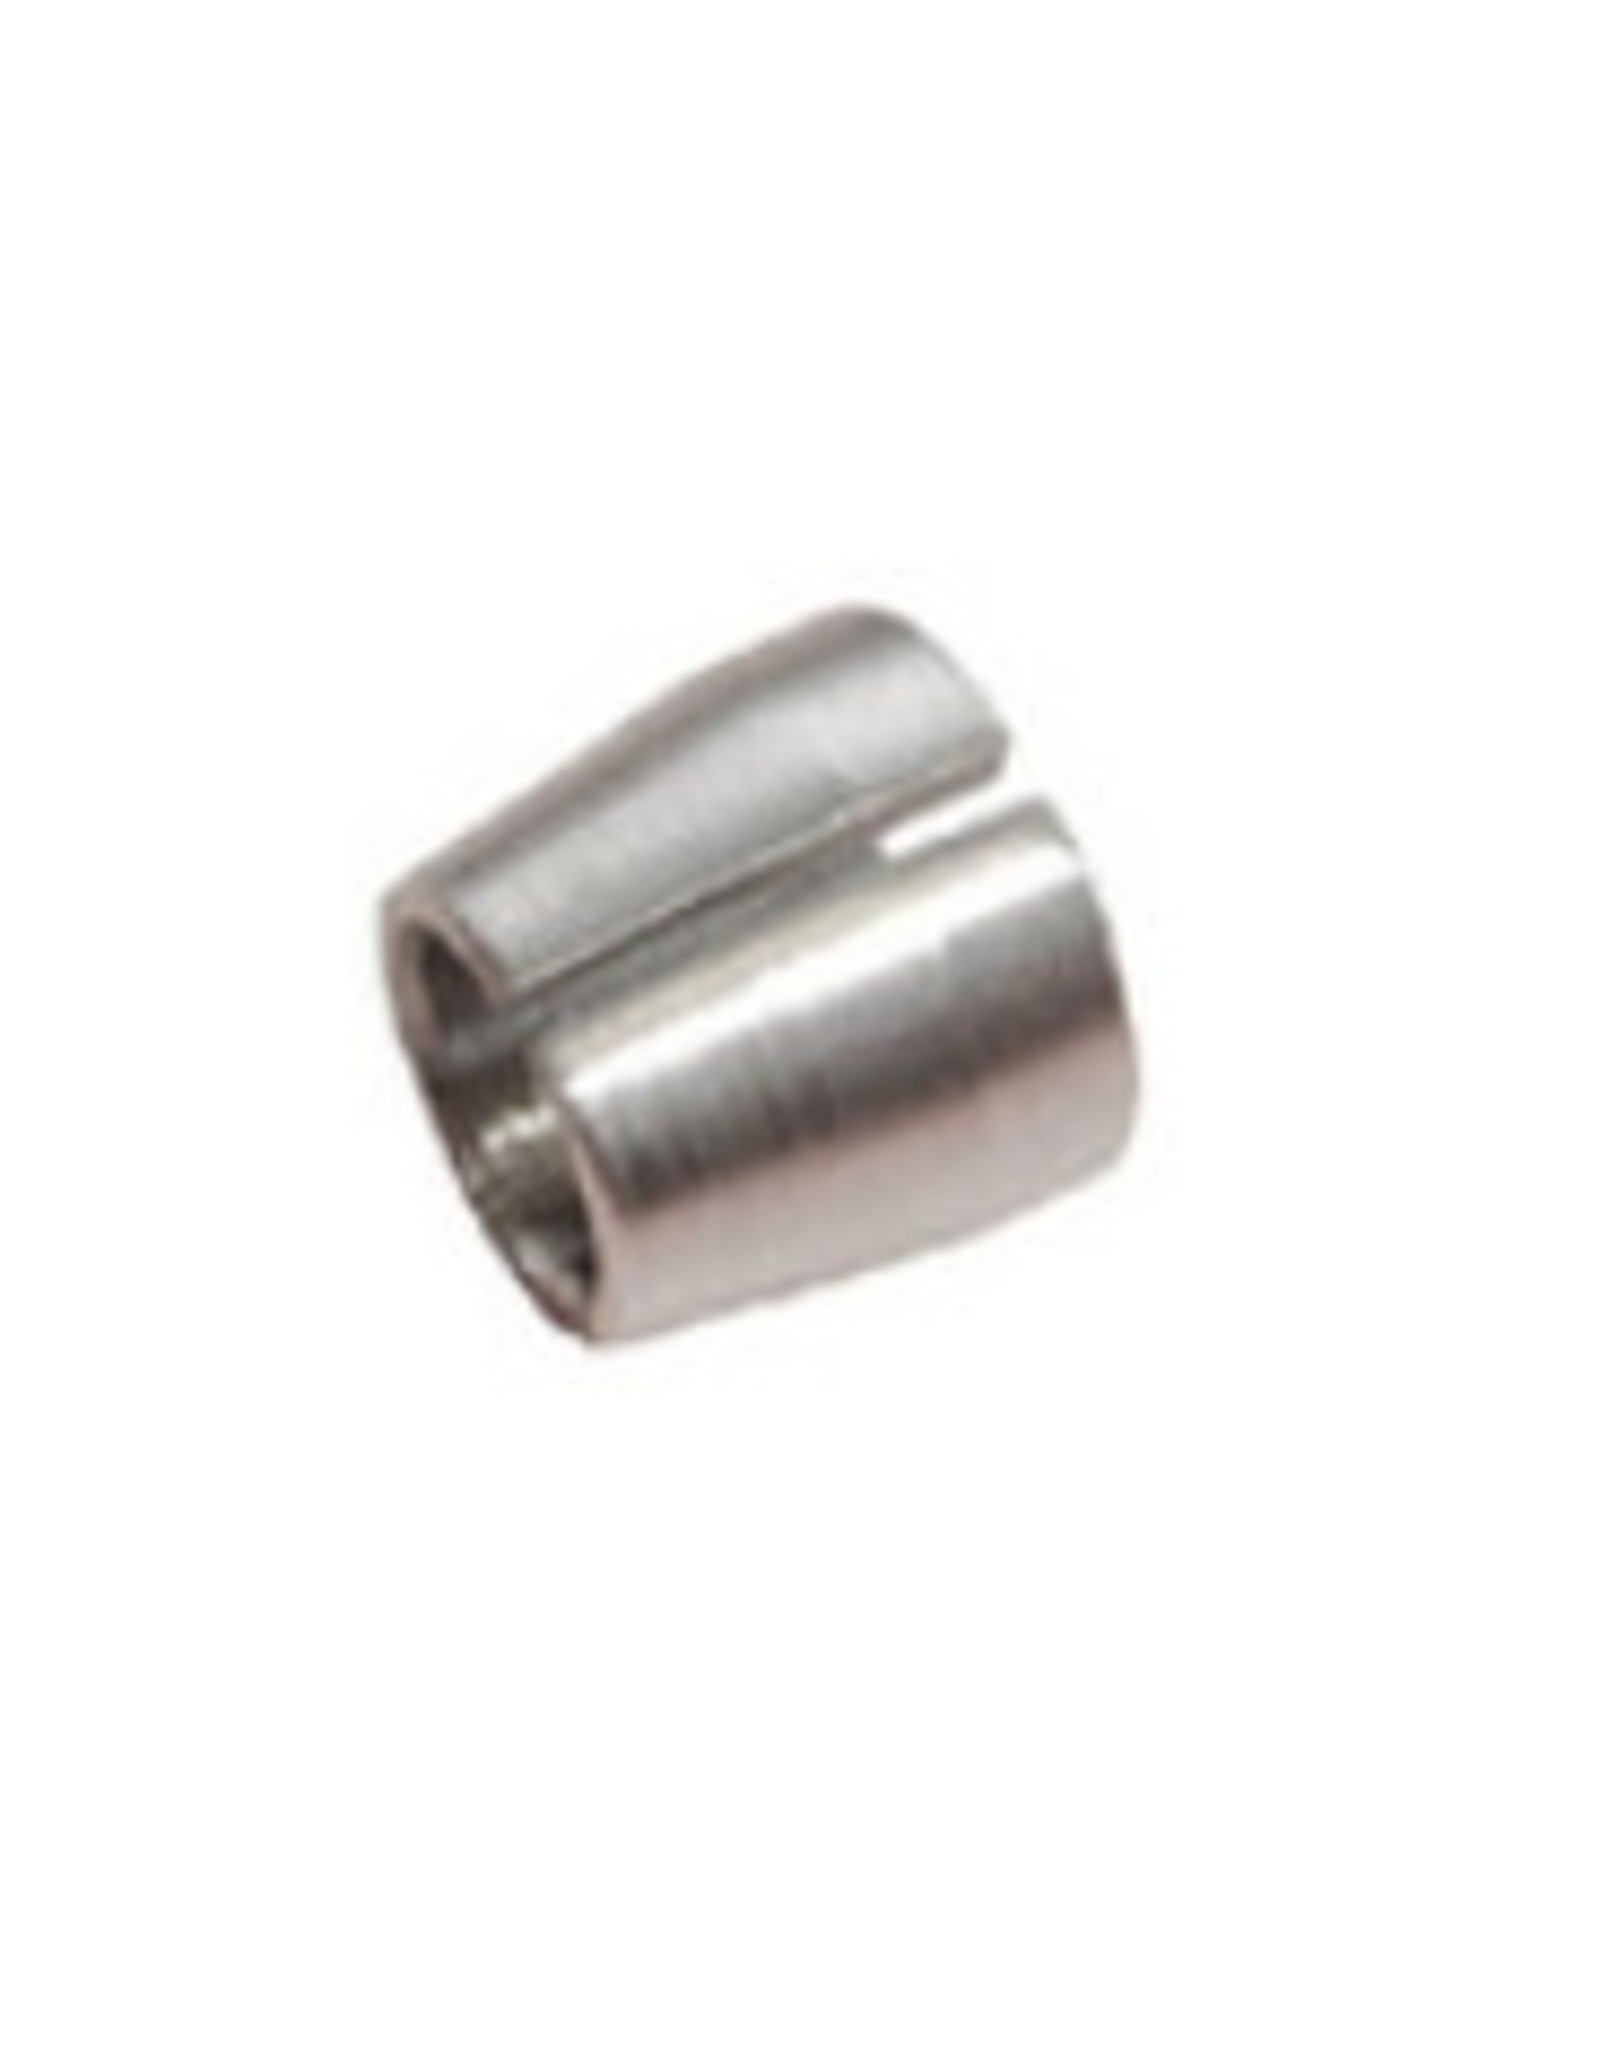 Bystronic Style Collet